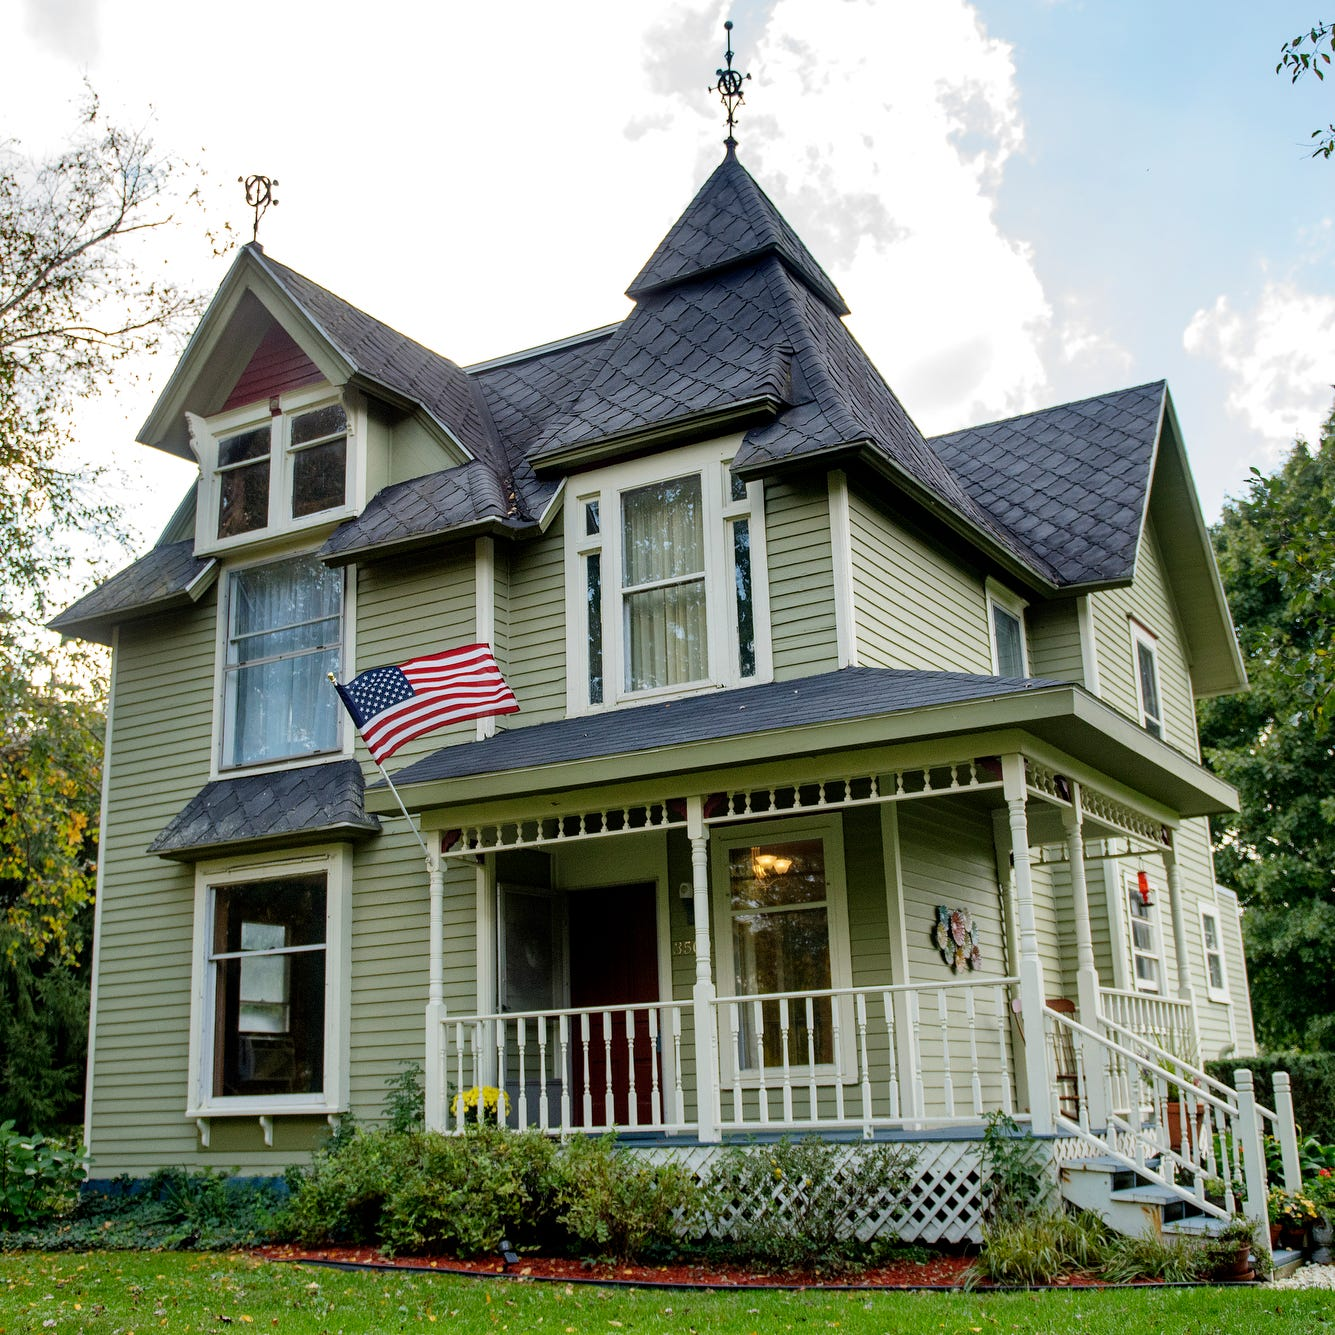 125-year-old Queen Anne Victorian-style farmhouse in Okemos on the market for $190K